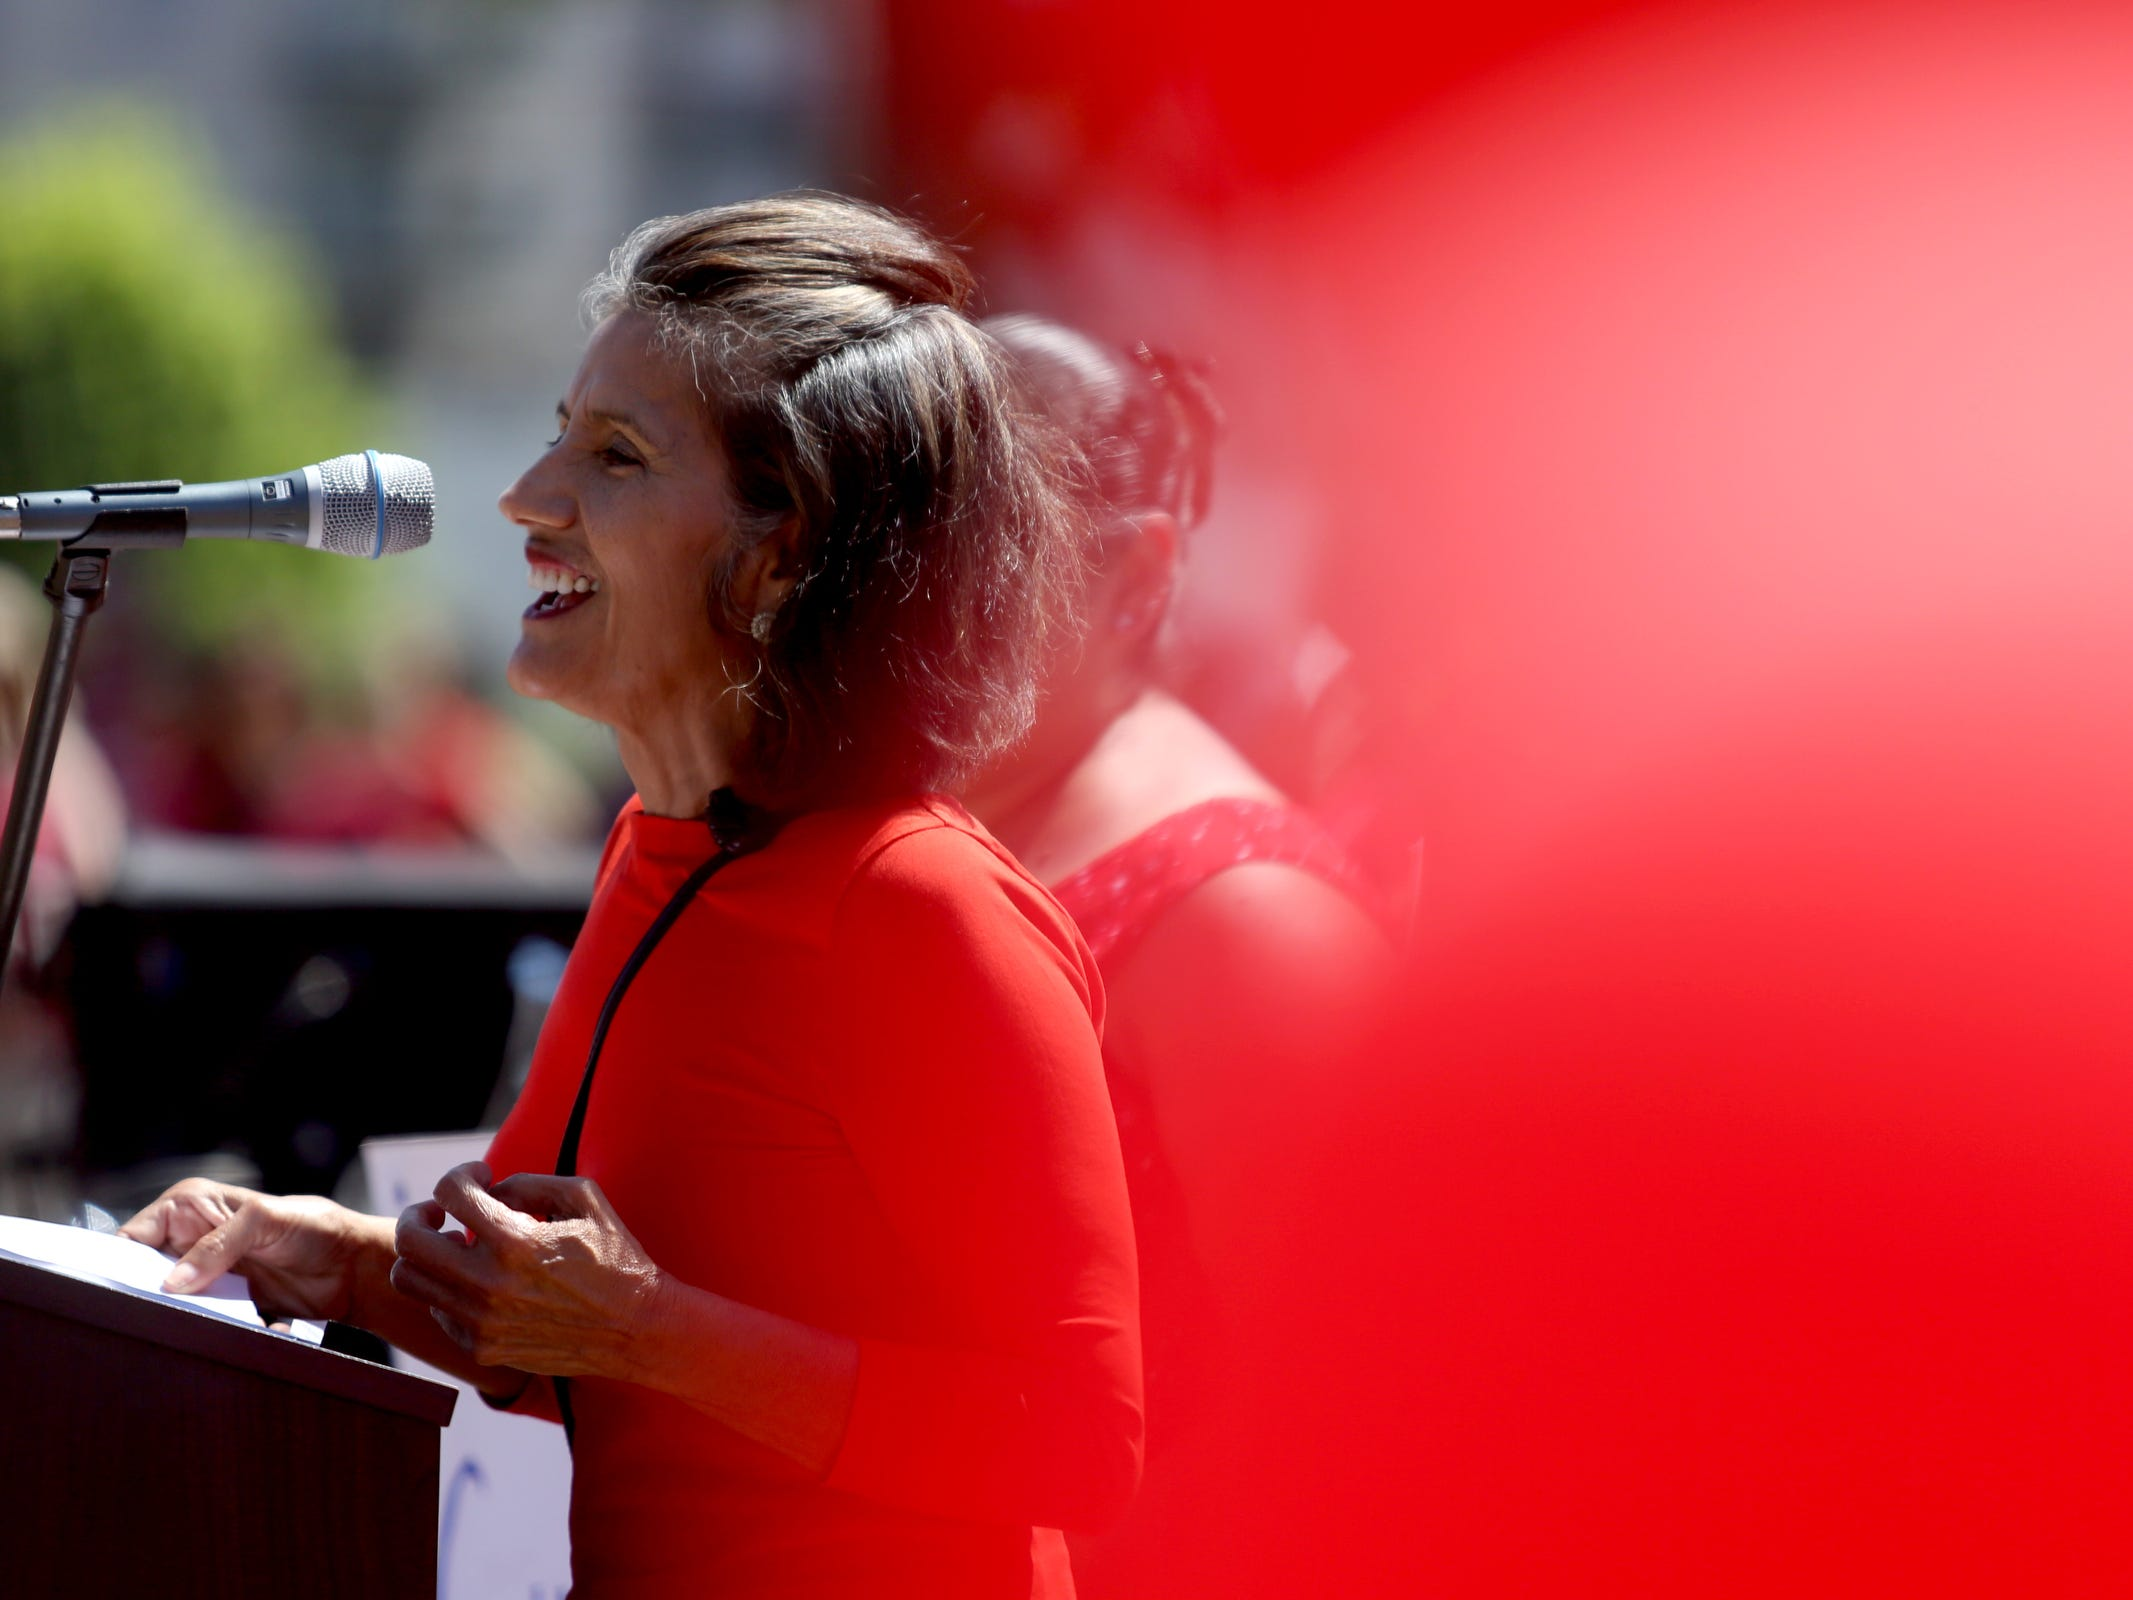 Aurora Cedillo, a retired bilingual elementary school teacher, speaks as more thousands of teachers and education activists rally for a day of action starting at Riverfront Park in Salem on May 8, 2019. Schools across Oregon closed early or were closed for the day as teachers walked out to demand more school funding to address large class sizes, low graduation rates and other concerns.